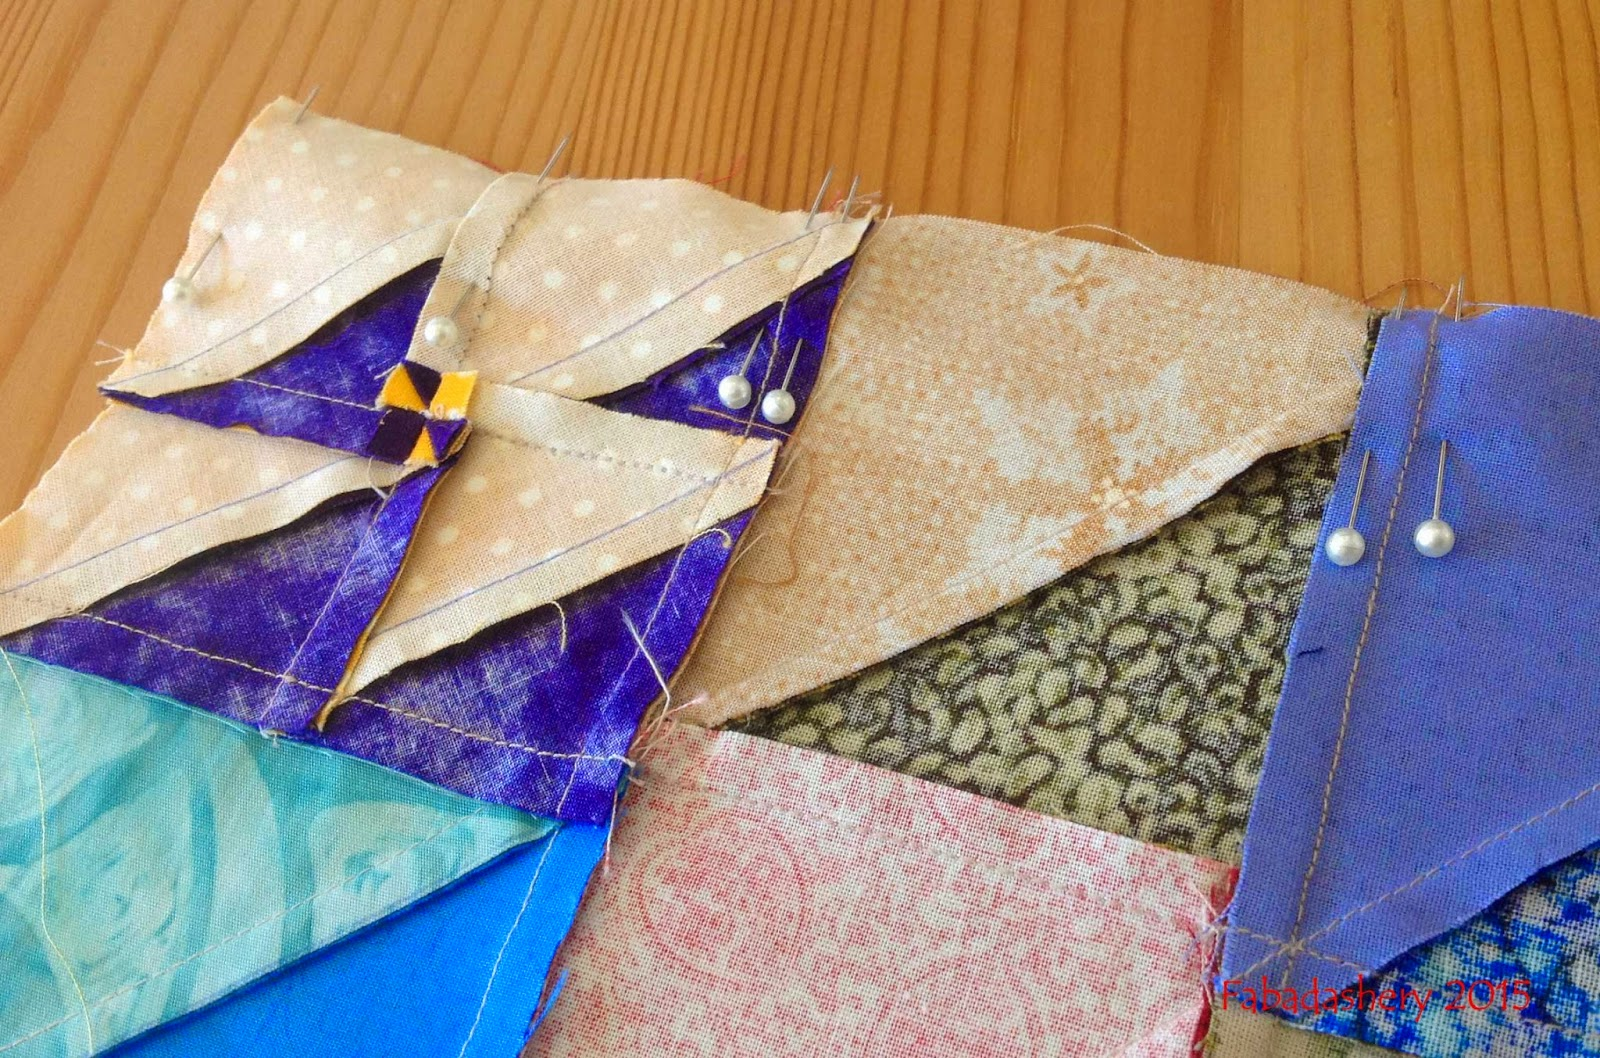 Double pinning quilt seams